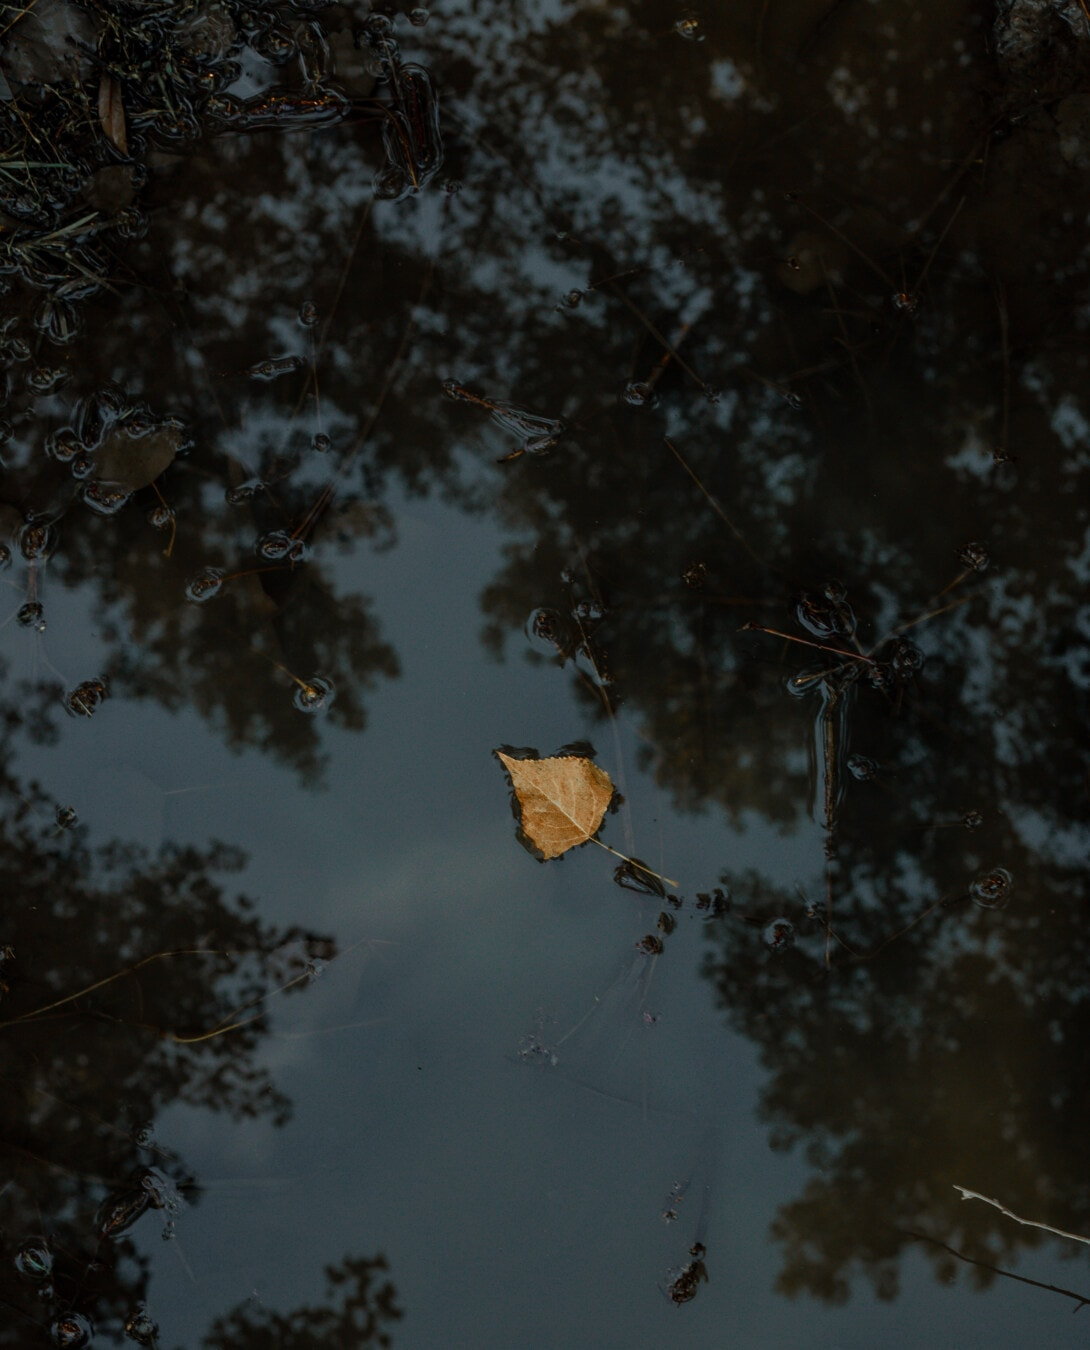 calm, reflection, water, floating, yellowish brown, leaf, landscape, nature, dark, dawn